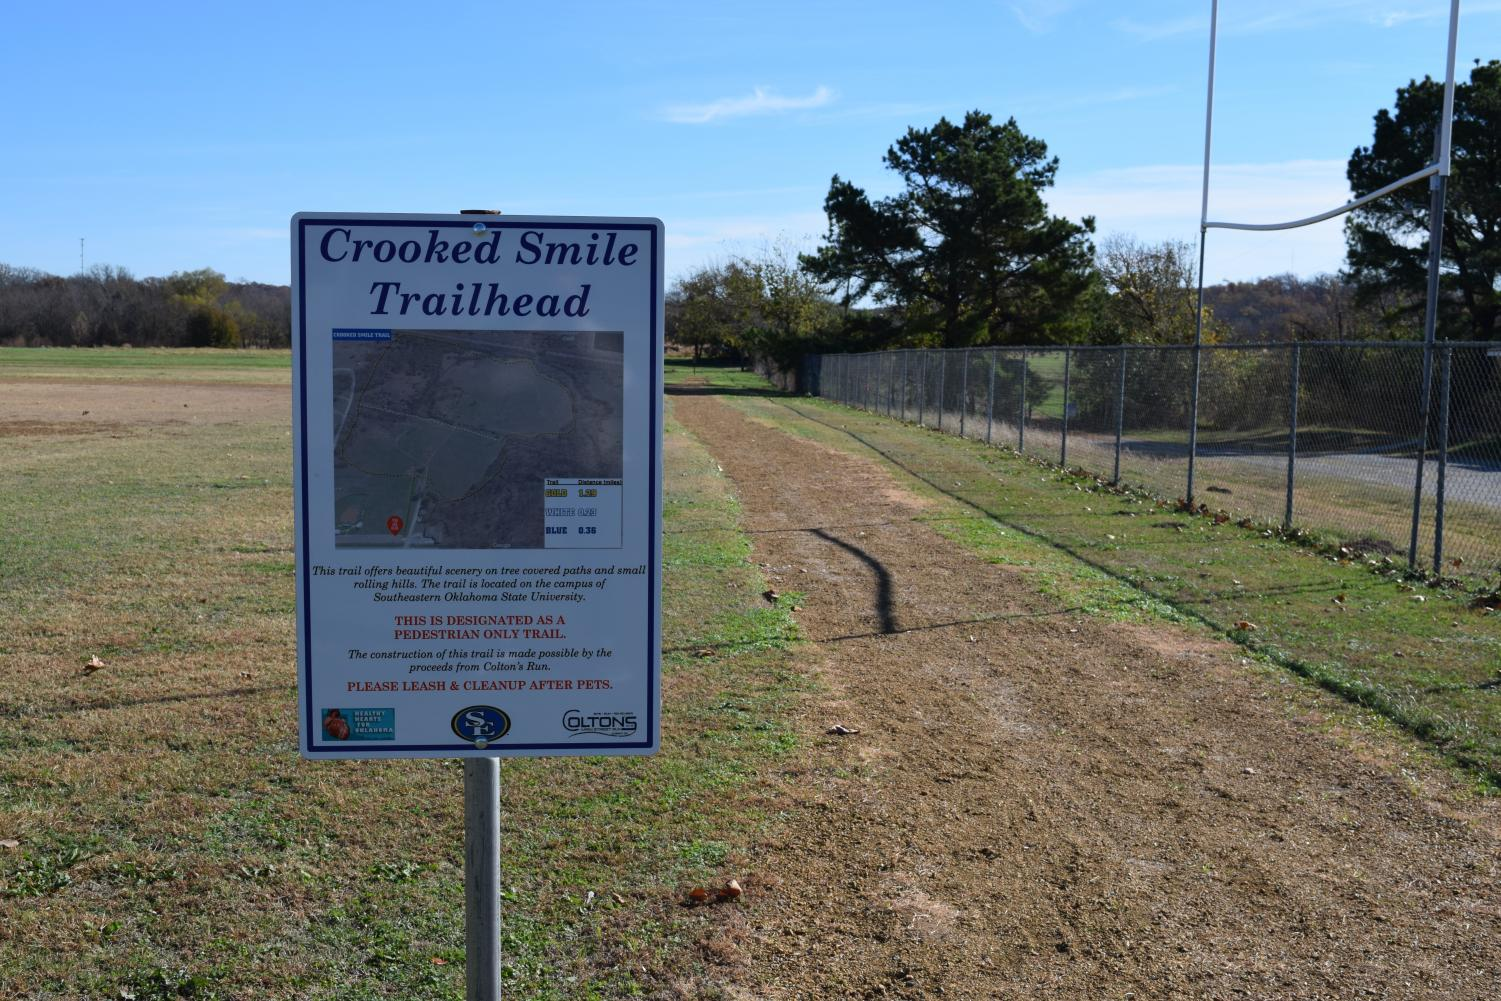 New Crooked Smile cross country trail opens on SE campus.